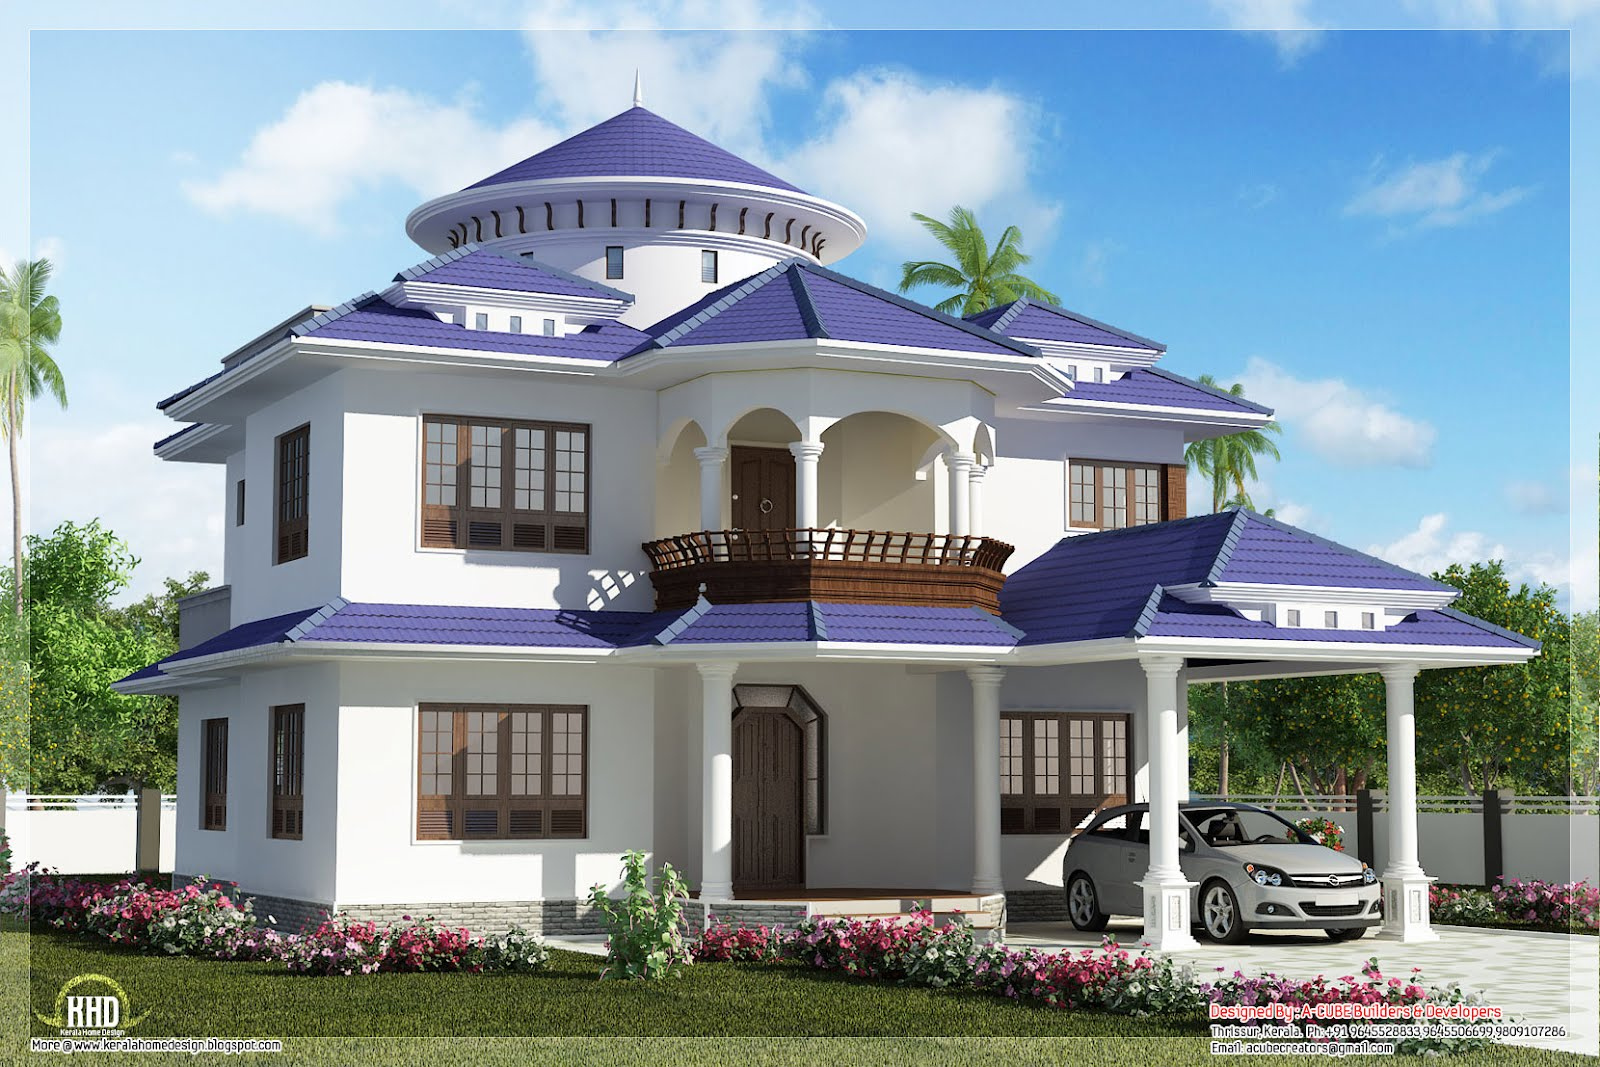 Beautiful dream home design in 2800 kerala home design and floor plans - House to home designs ...